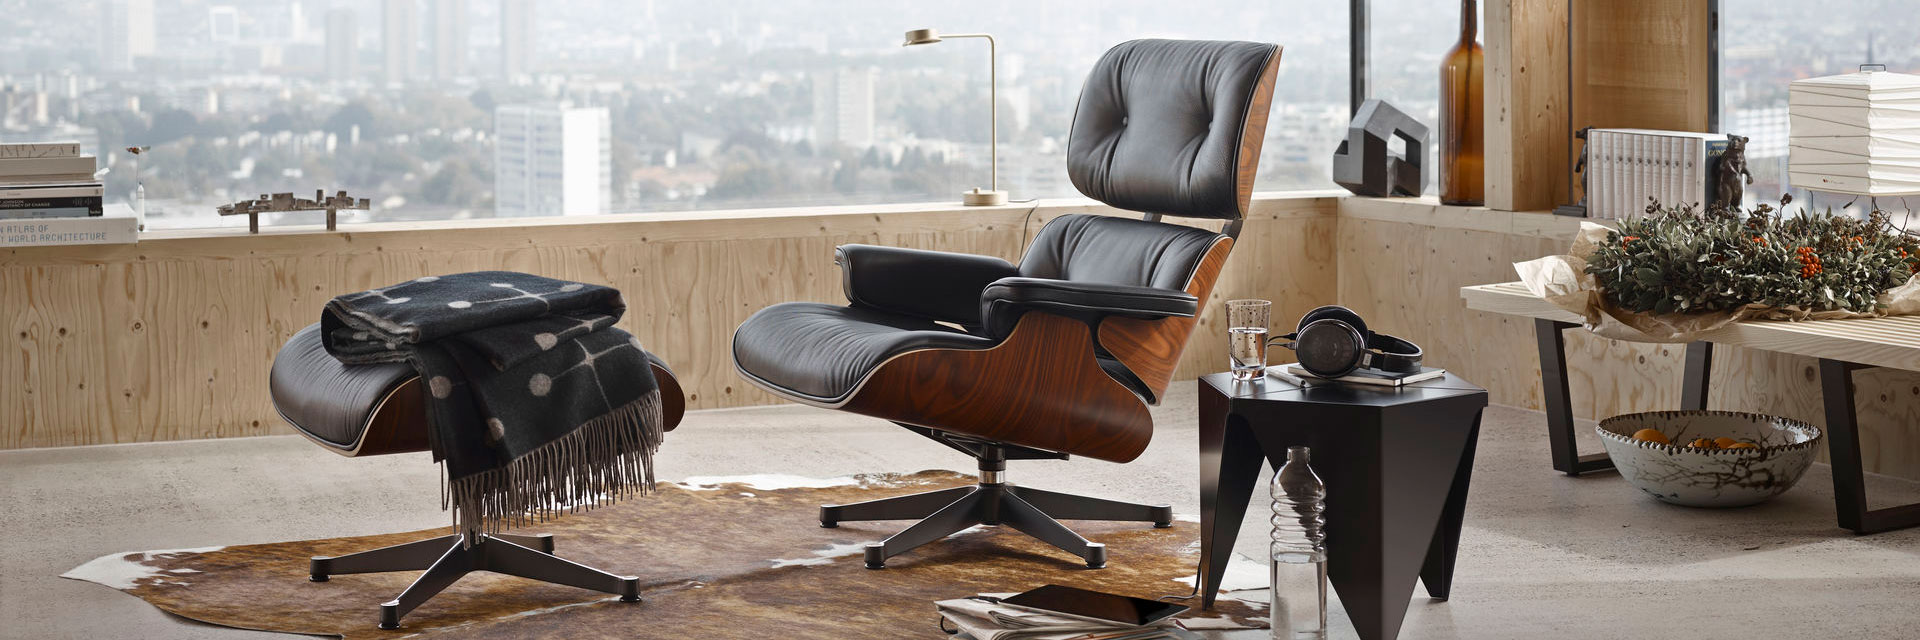 Lounge Vitra Chair